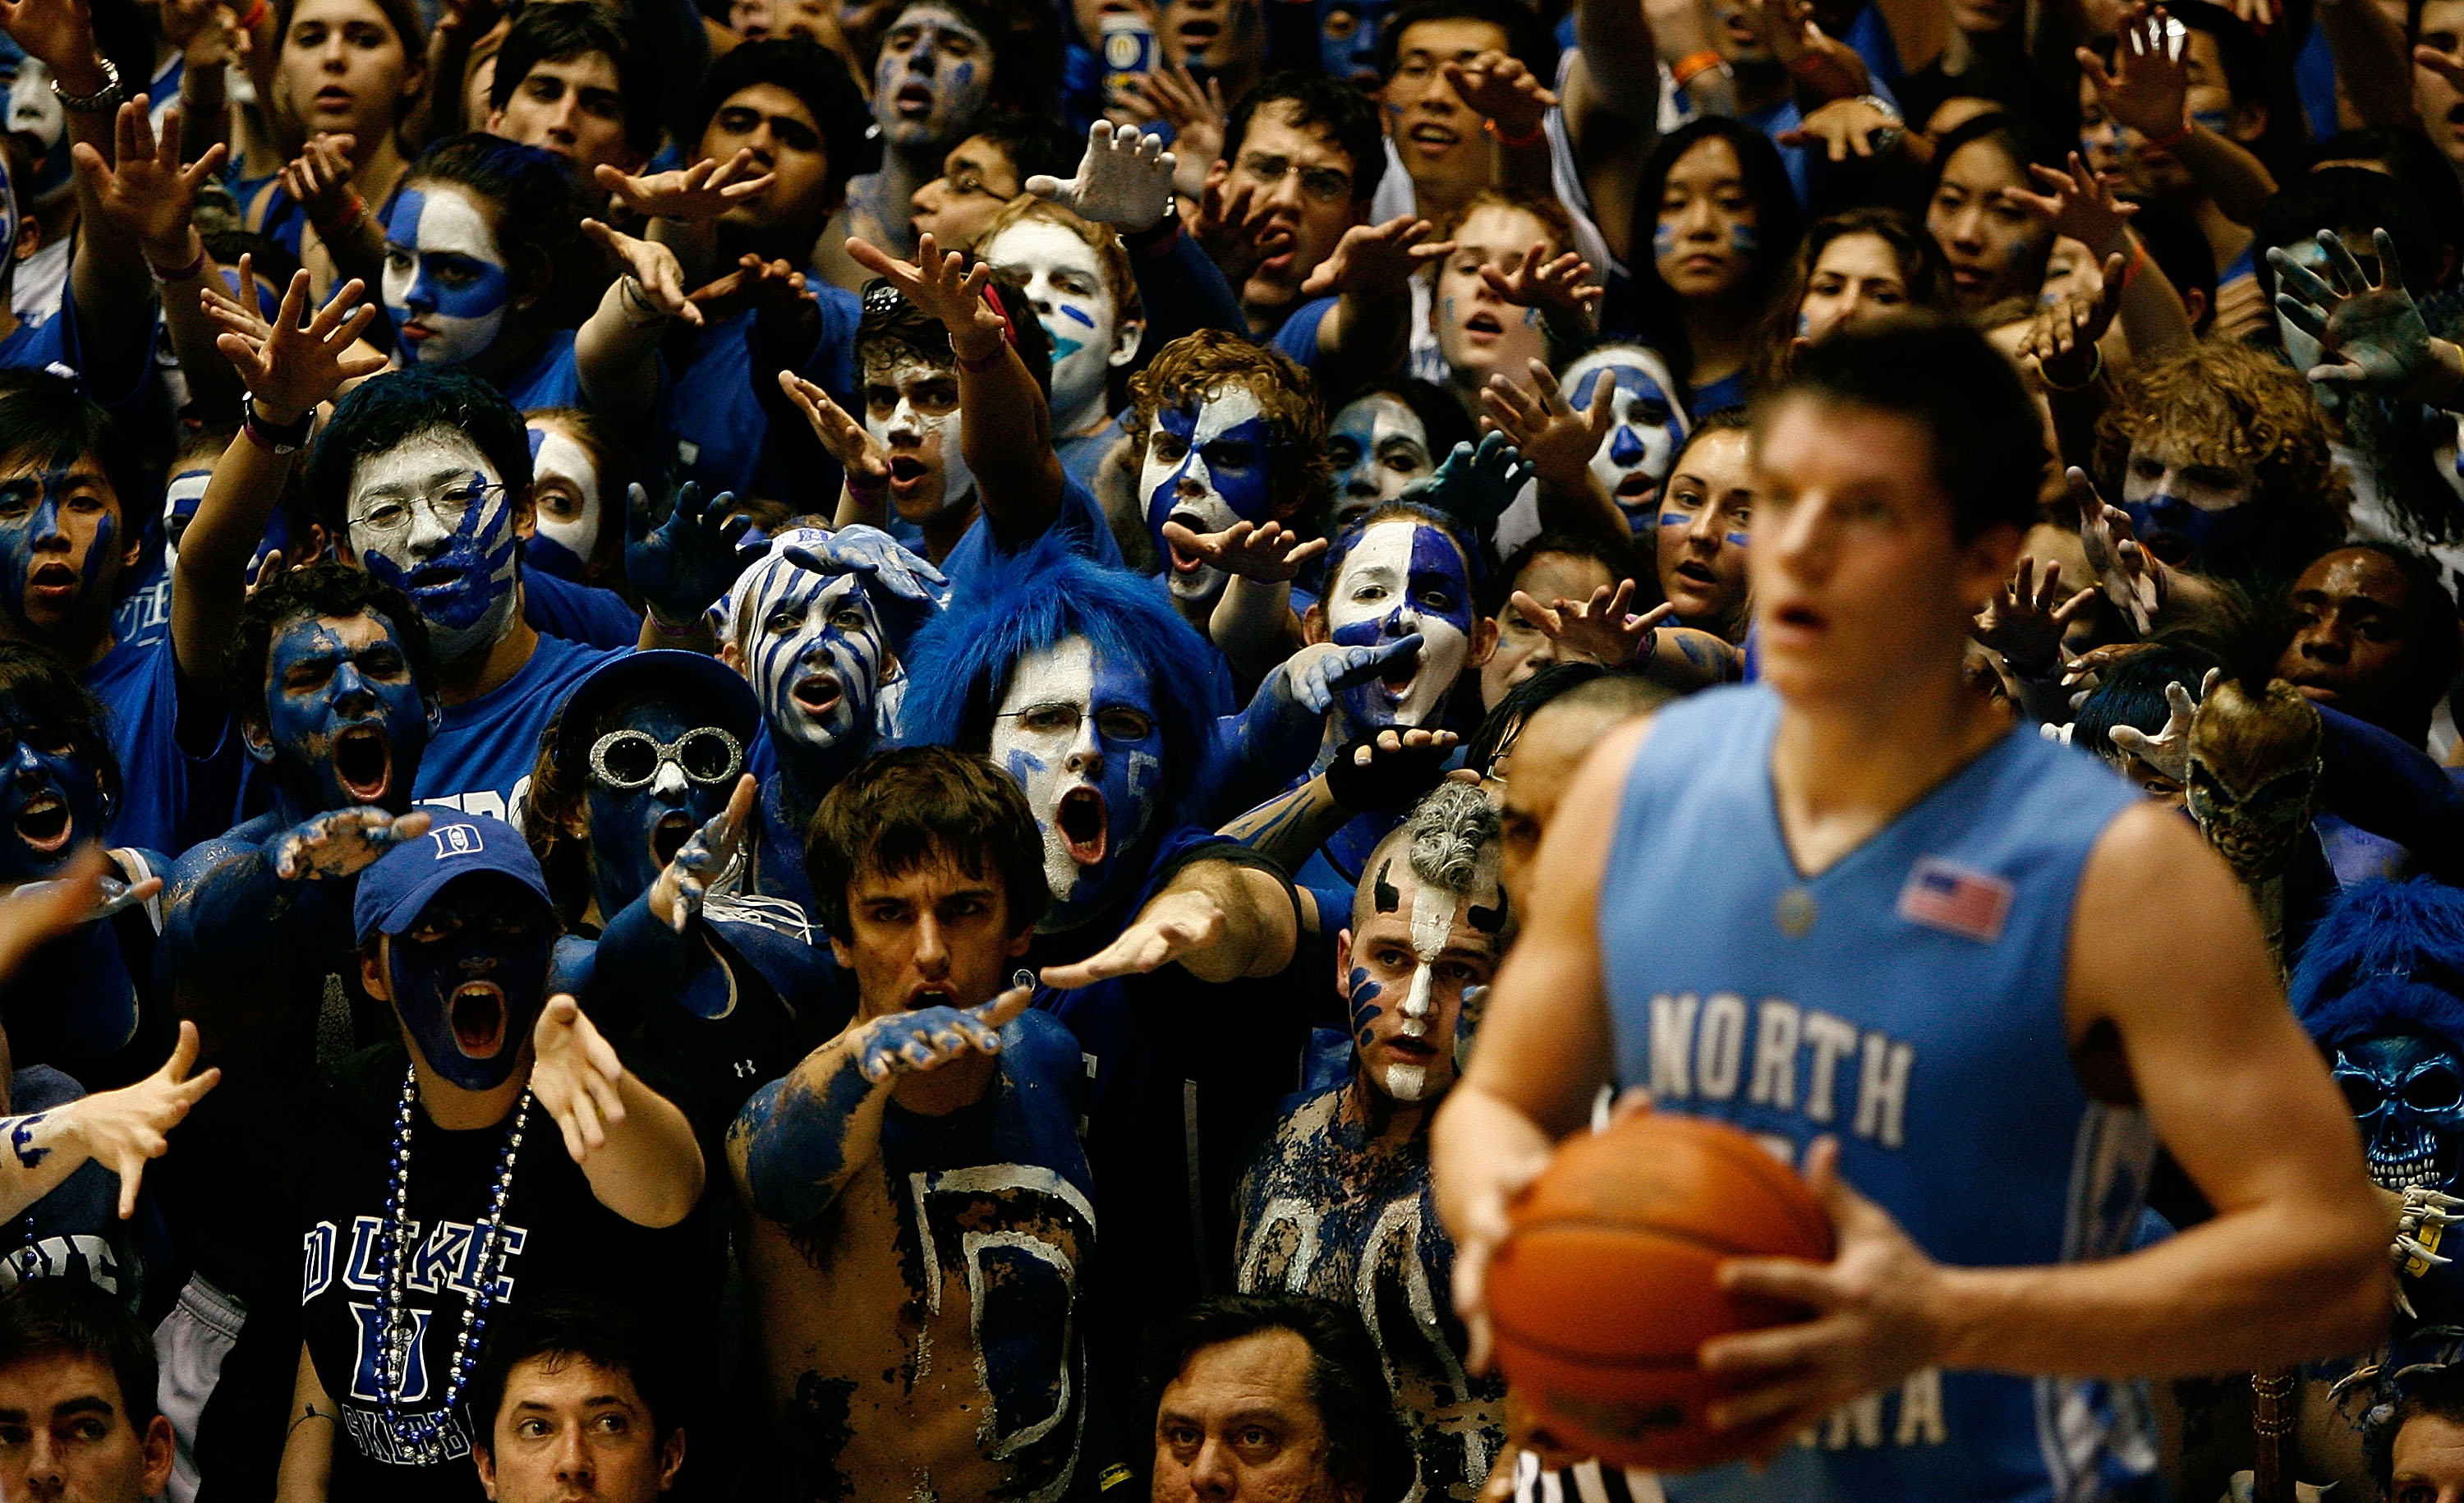 DURHAM, NC - FEBRUARY 11:  The Cameron Crazies of Duke taunt Bobby Frasor #4 of the North Carolina Tar Heels during their game on February 11, 2009 at Cameron Indoor Stadium in Durham, North Carolina.  (Photo by Kevin Cox/Getty Images)